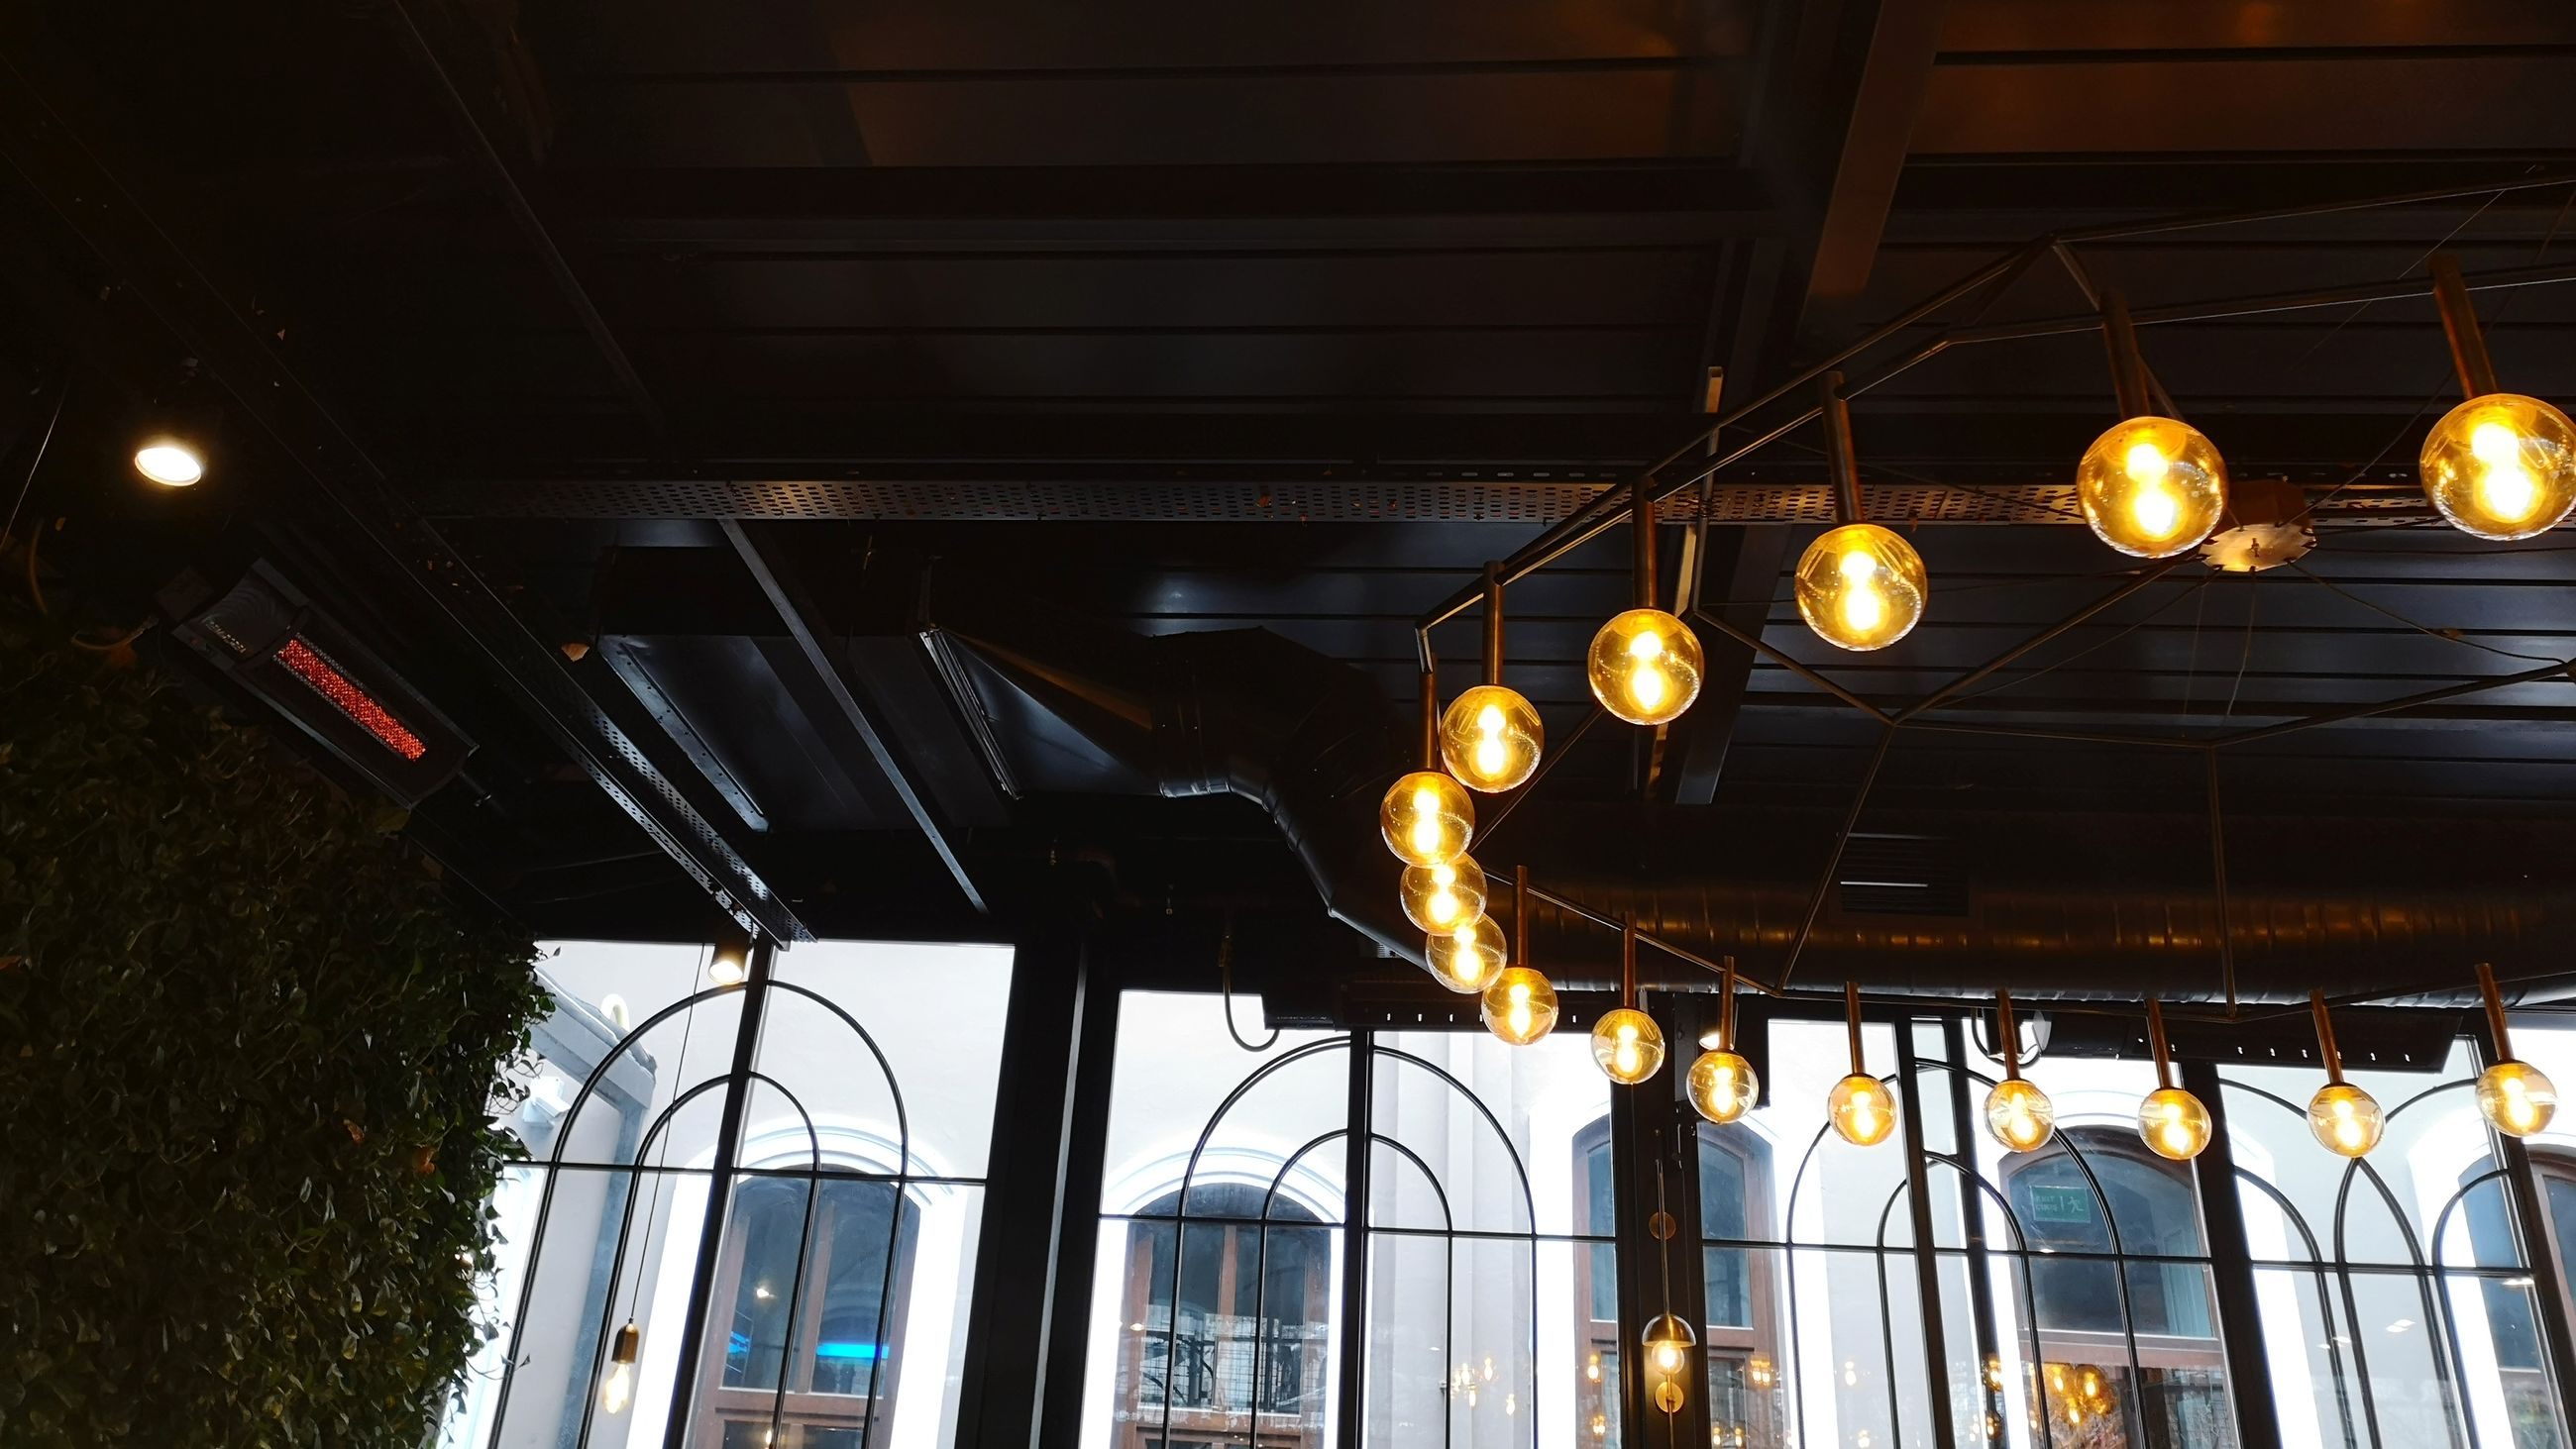 LOW ANGLE VIEW OF ILLUMINATED PENDANT LIGHT HANGING ON CEILING OF BUILDING